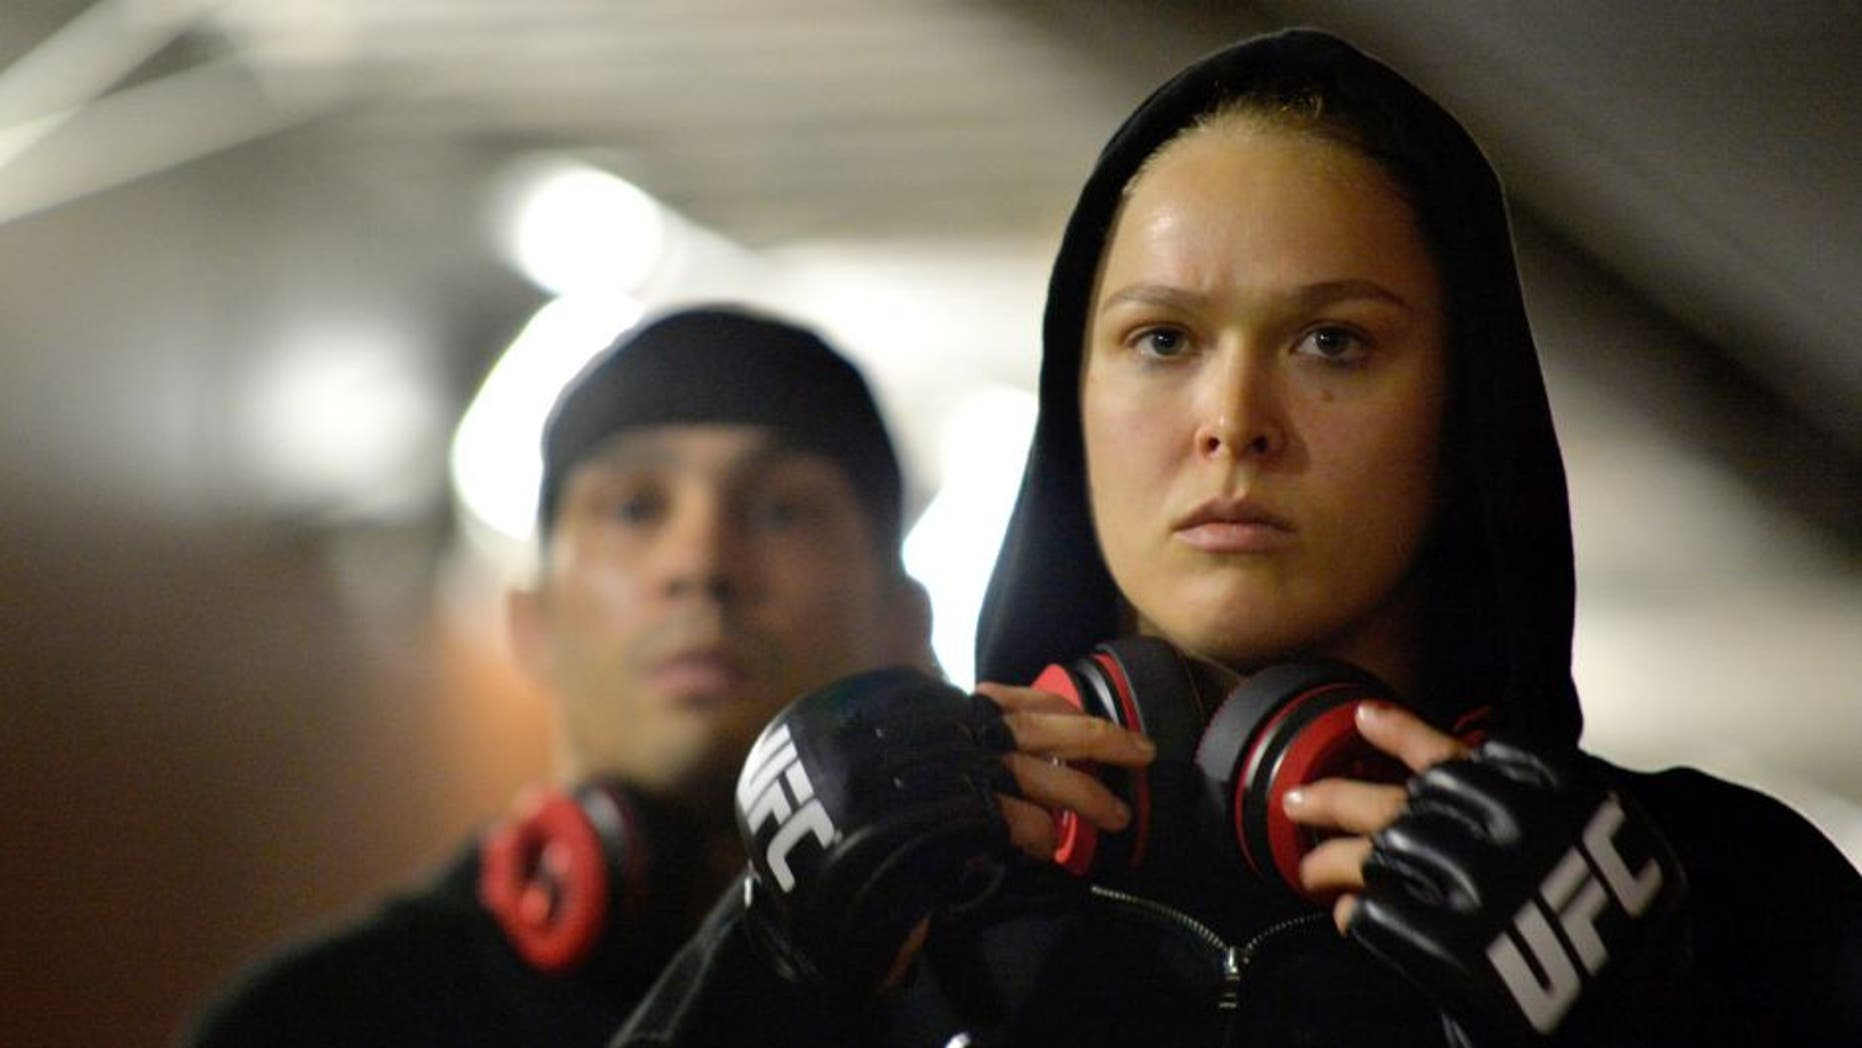 LOS ANGELES, CA - FEBRUARY 28: Ronda Rousey prepares to enter the Octagon in her UFC women's bantamweight championship bout against Cat Zingano during the UFC 184 event at Staples Center on February 28, 2015 in Los Angeles, California. (Photo by Mike Roach/Zuffa LLC/Zuffa LLC via Getty Images)